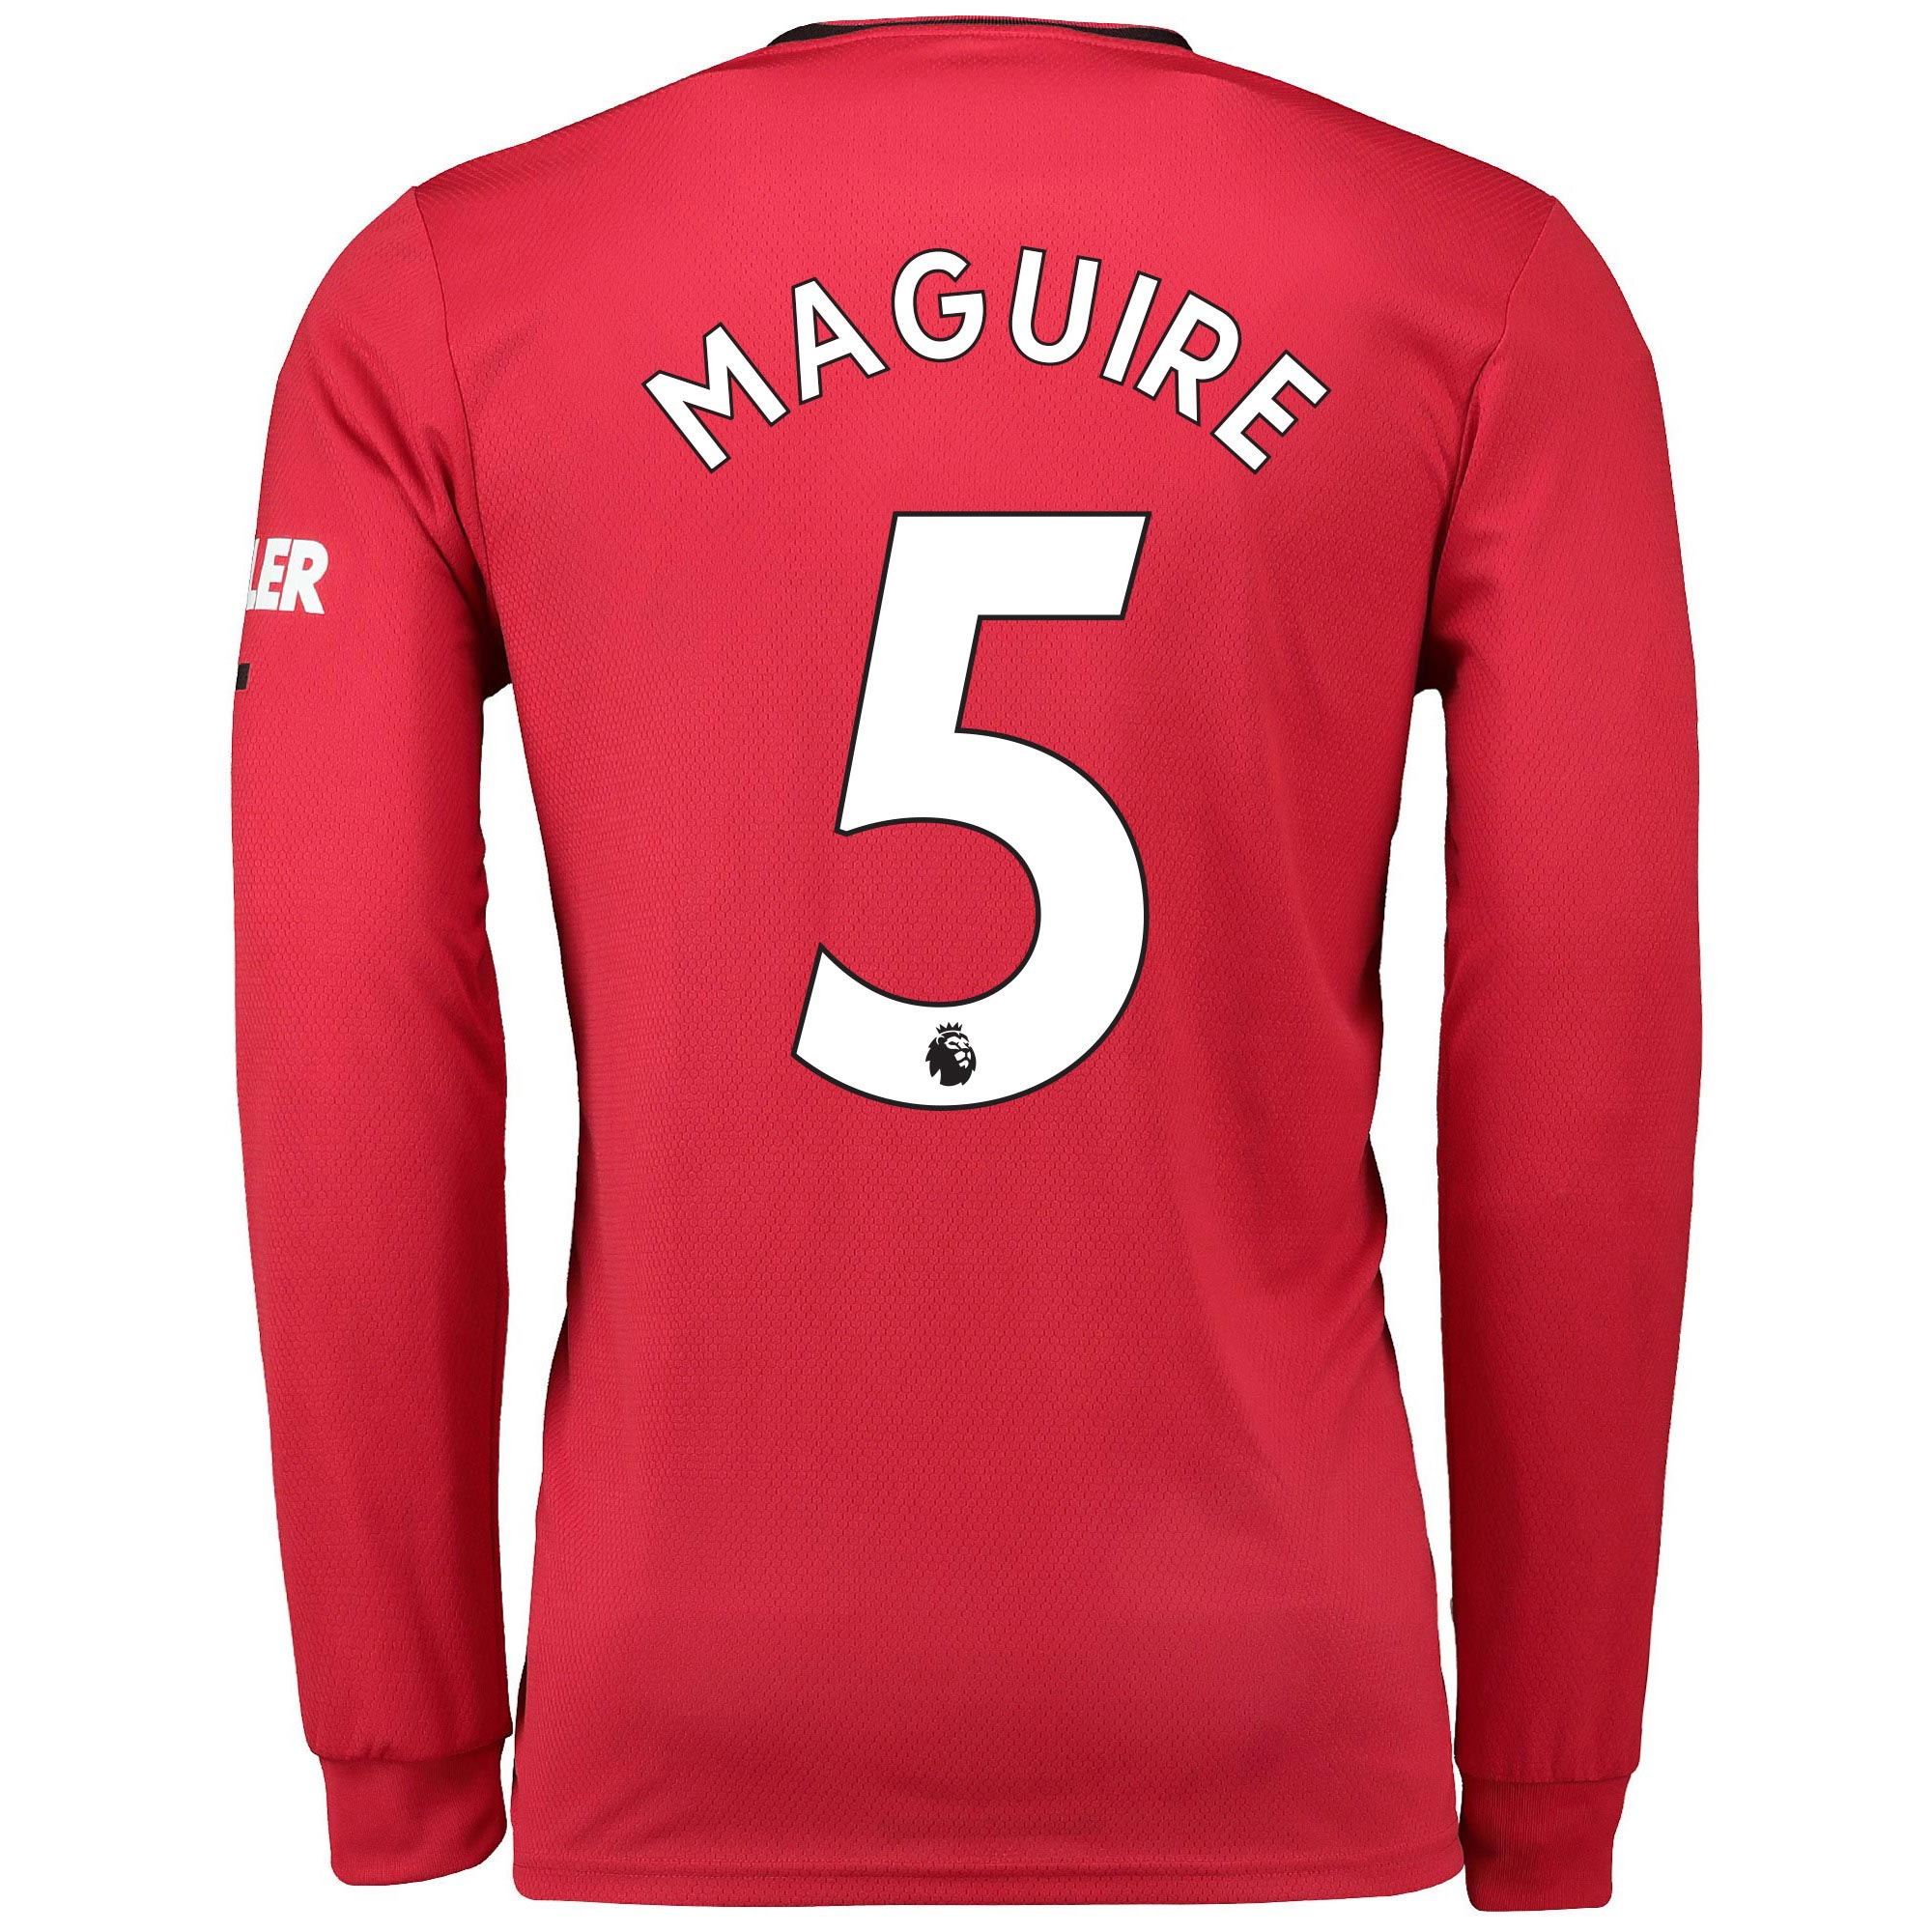 Football Manchester United Home Shirt 2019 - 20 - Long Sleeve with Maguire 5 printing